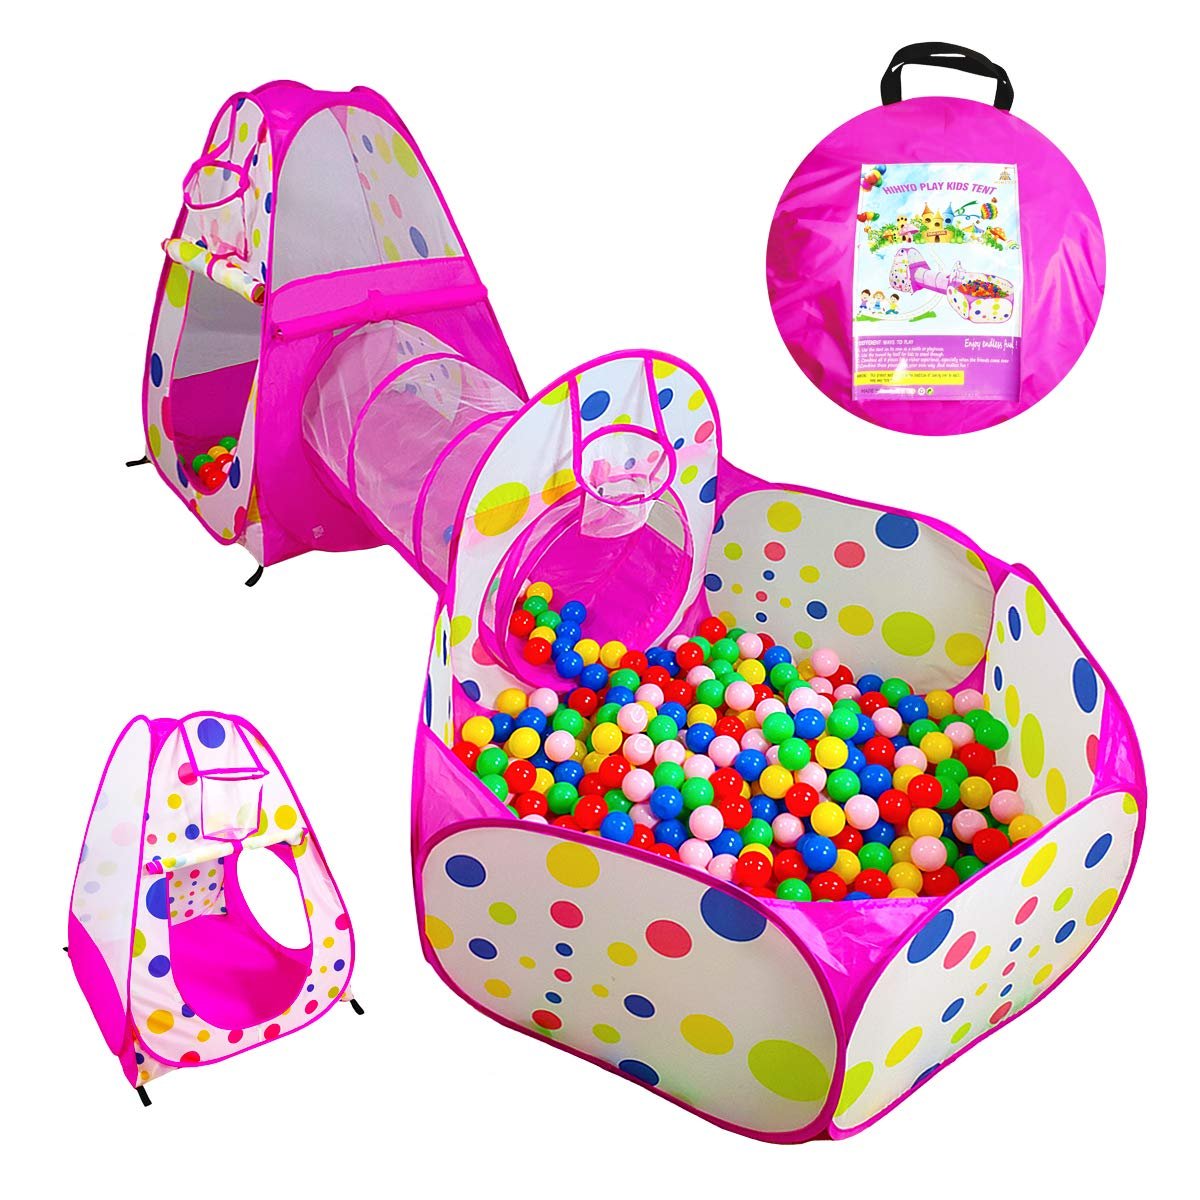 HIHIYO 3pc Kids Castle Space Tent Tunnel and Ball Pit Popup Playhouse for Girls Boys Child Gift for Birthday Toddlers and Indoor Outdoor Use with Carrying Case